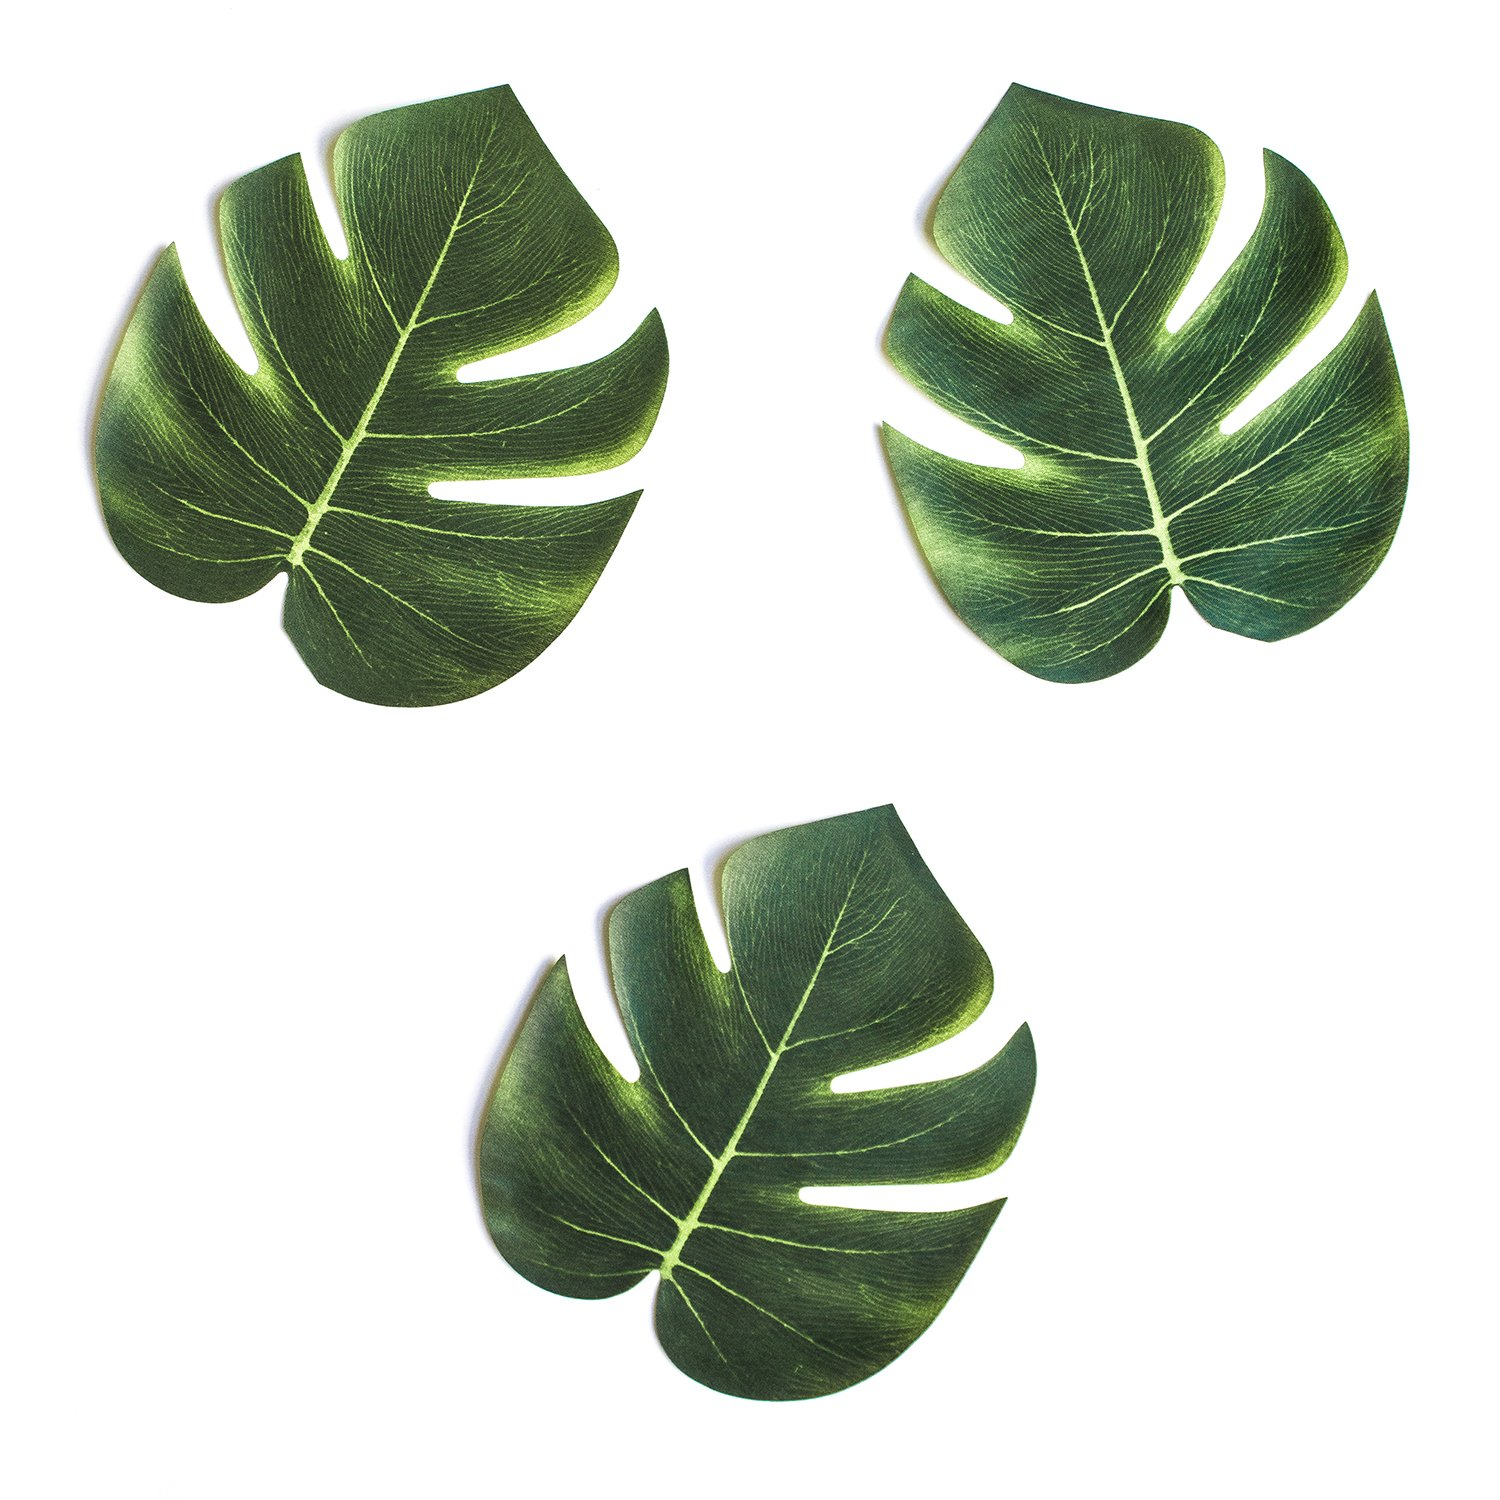 "Super Z Outlet Tropical Imitation Plant Leaves 8"" Hawaiian Luau Party Jungle Beach Theme Decorations for Birthdays, Prom, Events (12 Pack)"